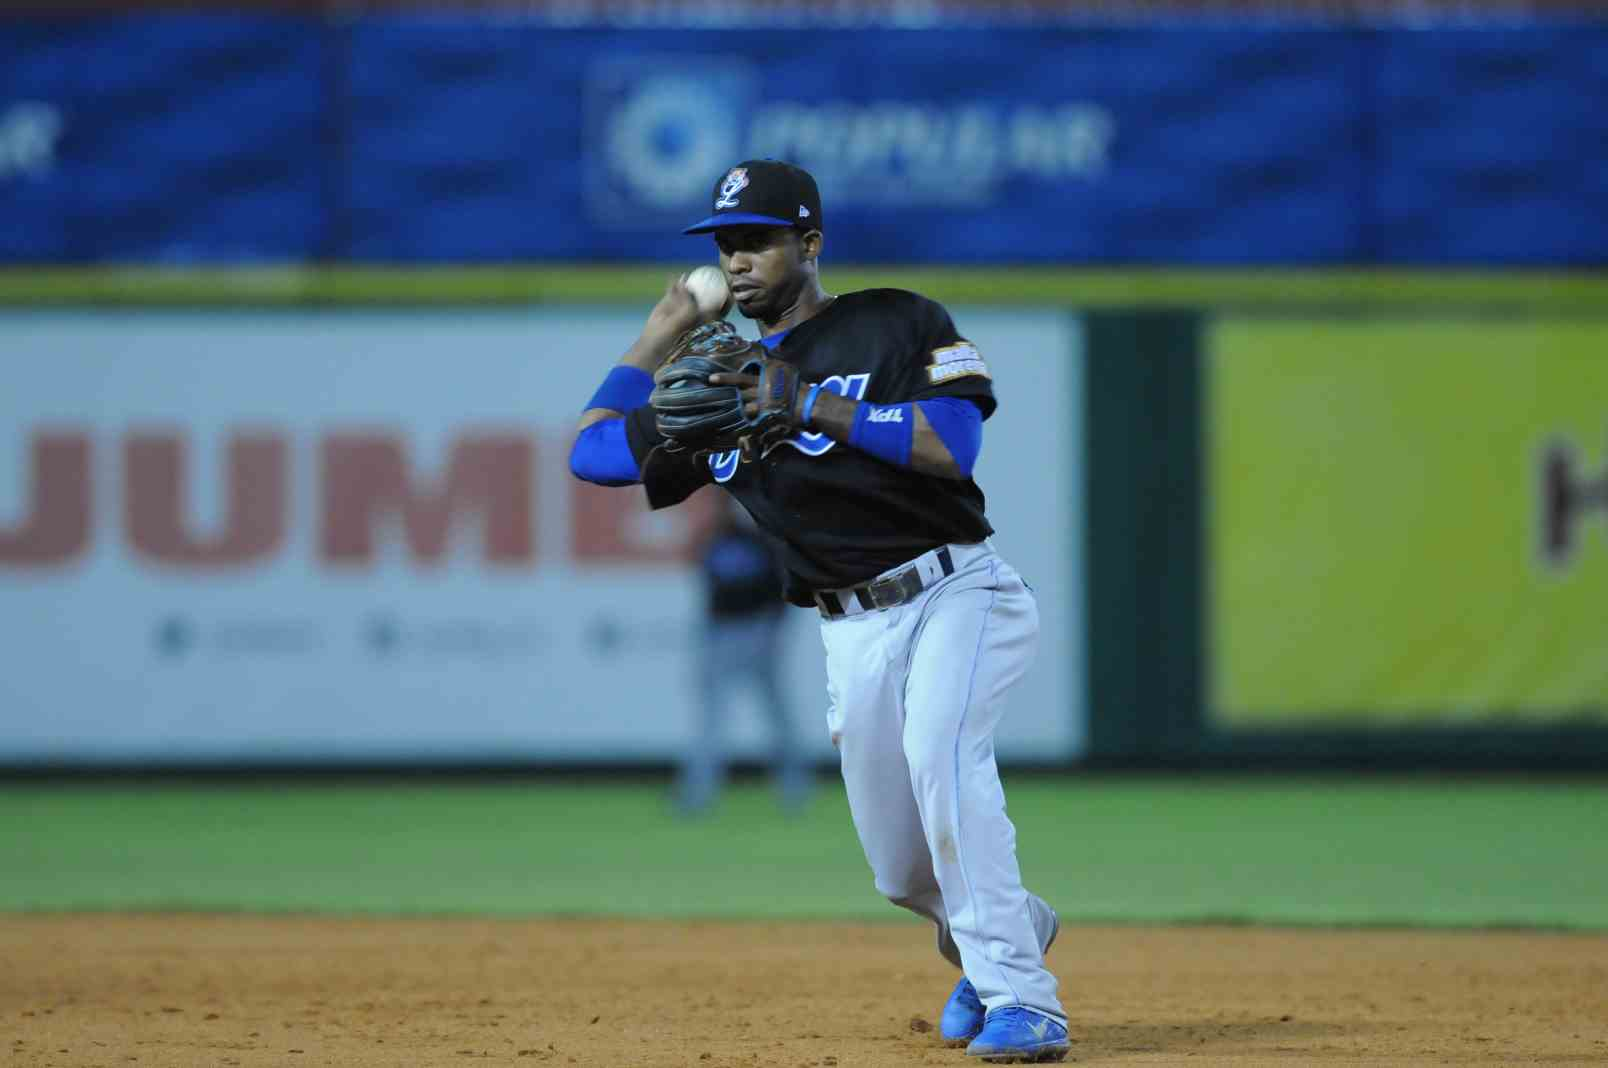 Alcantara, Arismendy vs Leones, Nov 16, 2013 (4)